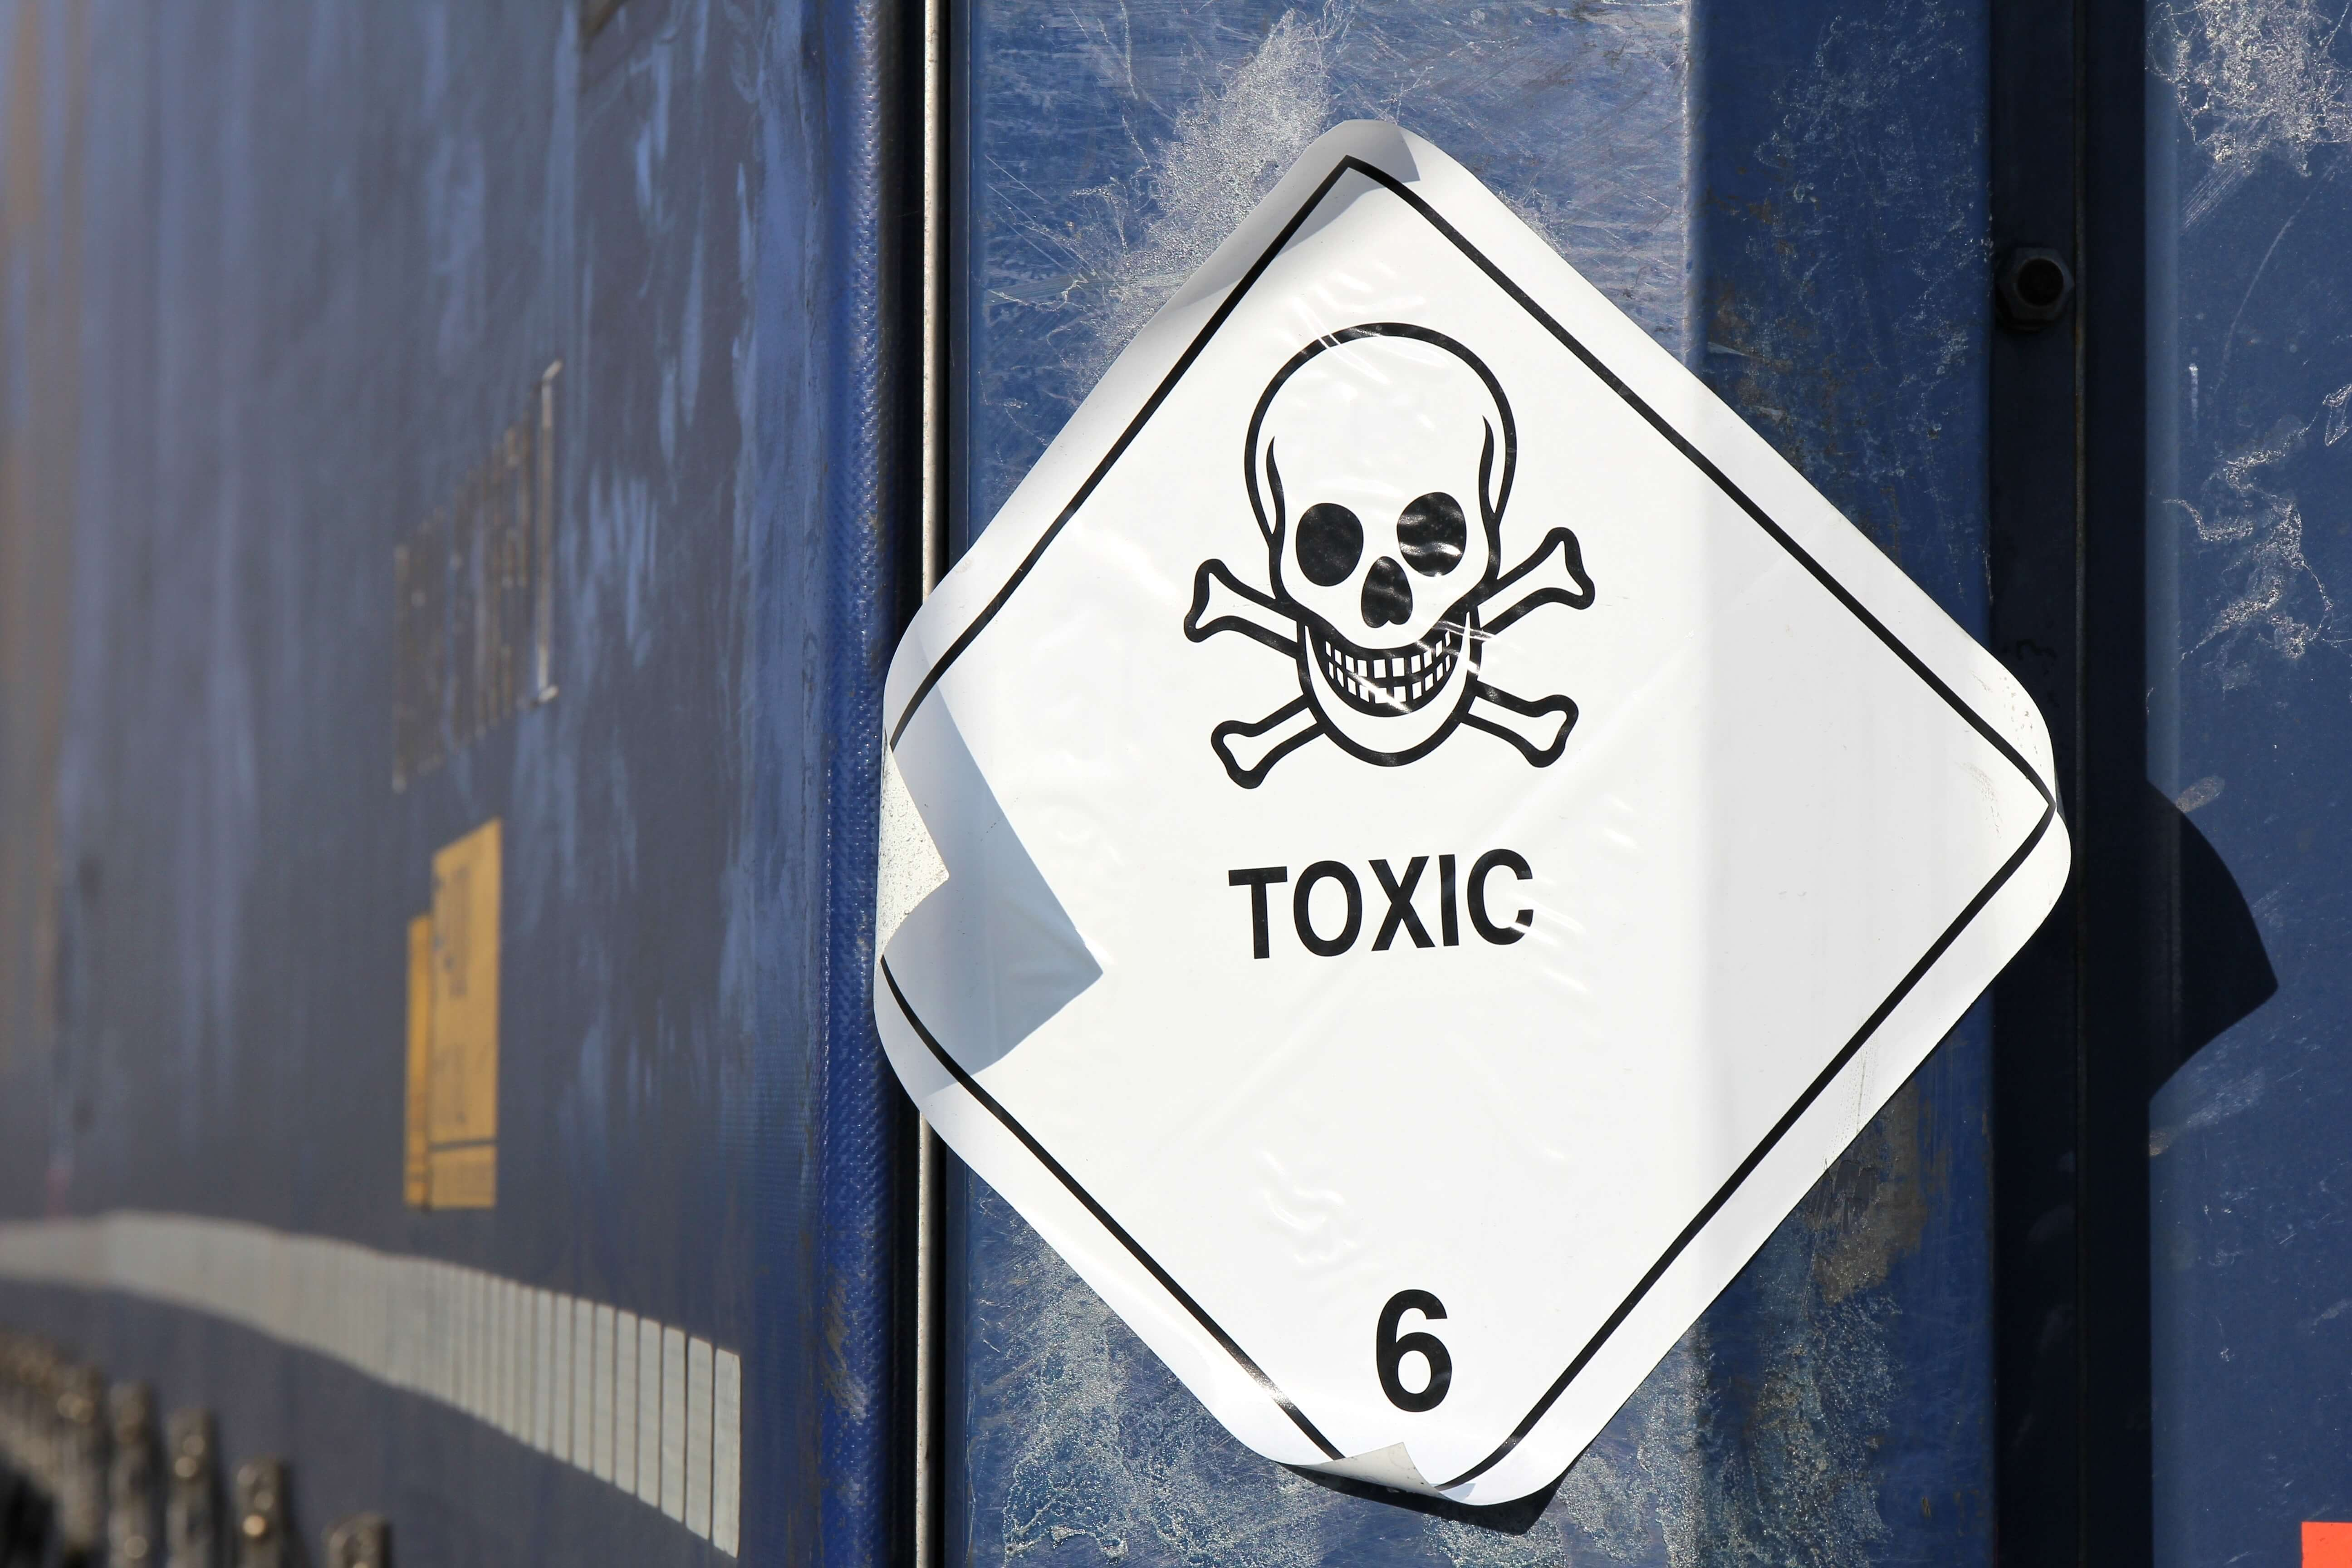 Toxic substance storage requirements for indoors